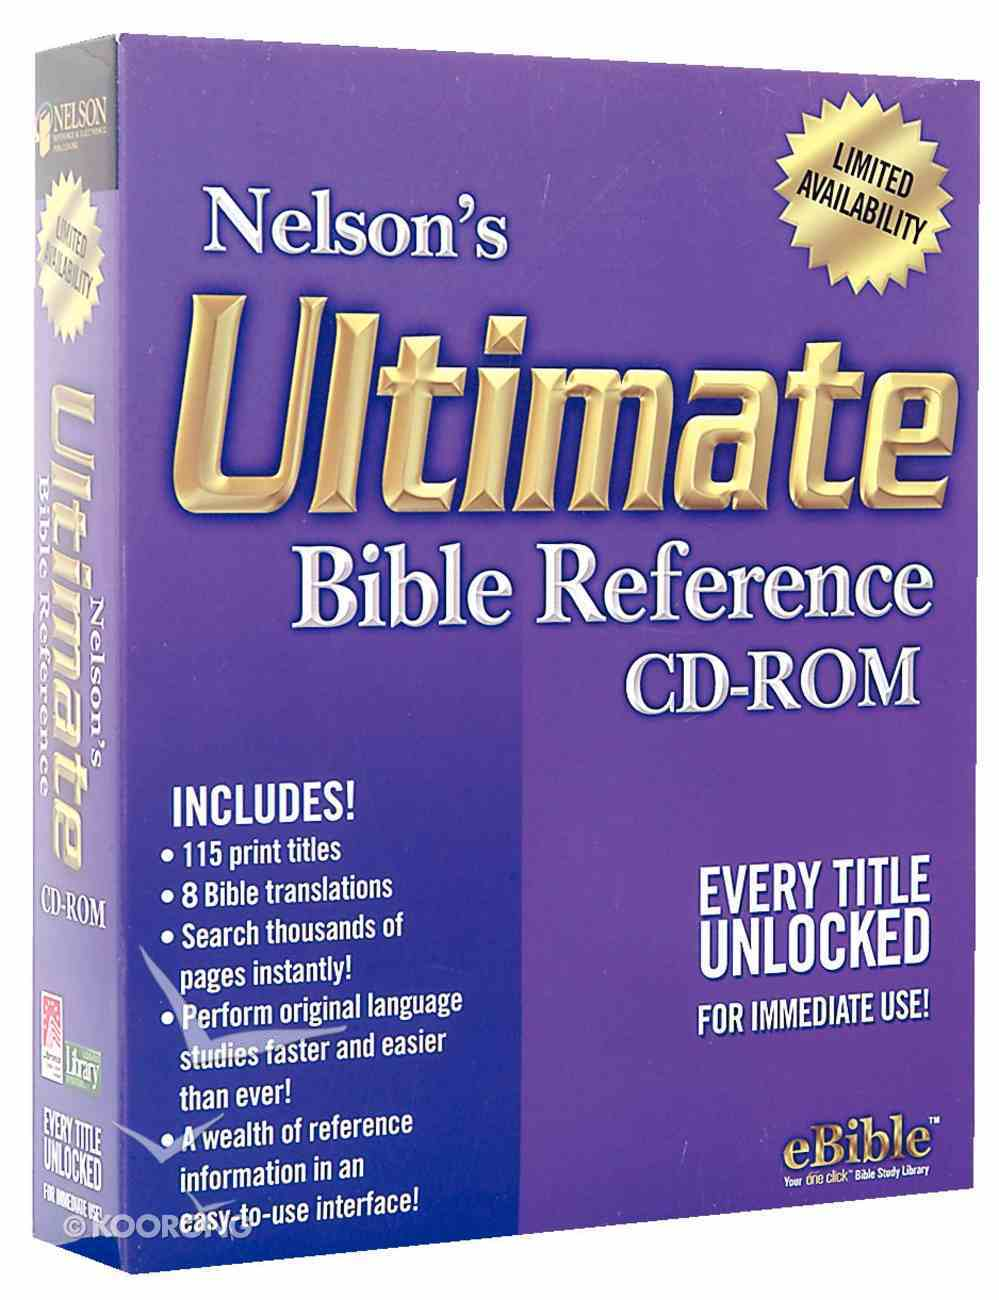 Nelson's Ebible Ultimate Edition CDROM Win CD-rom